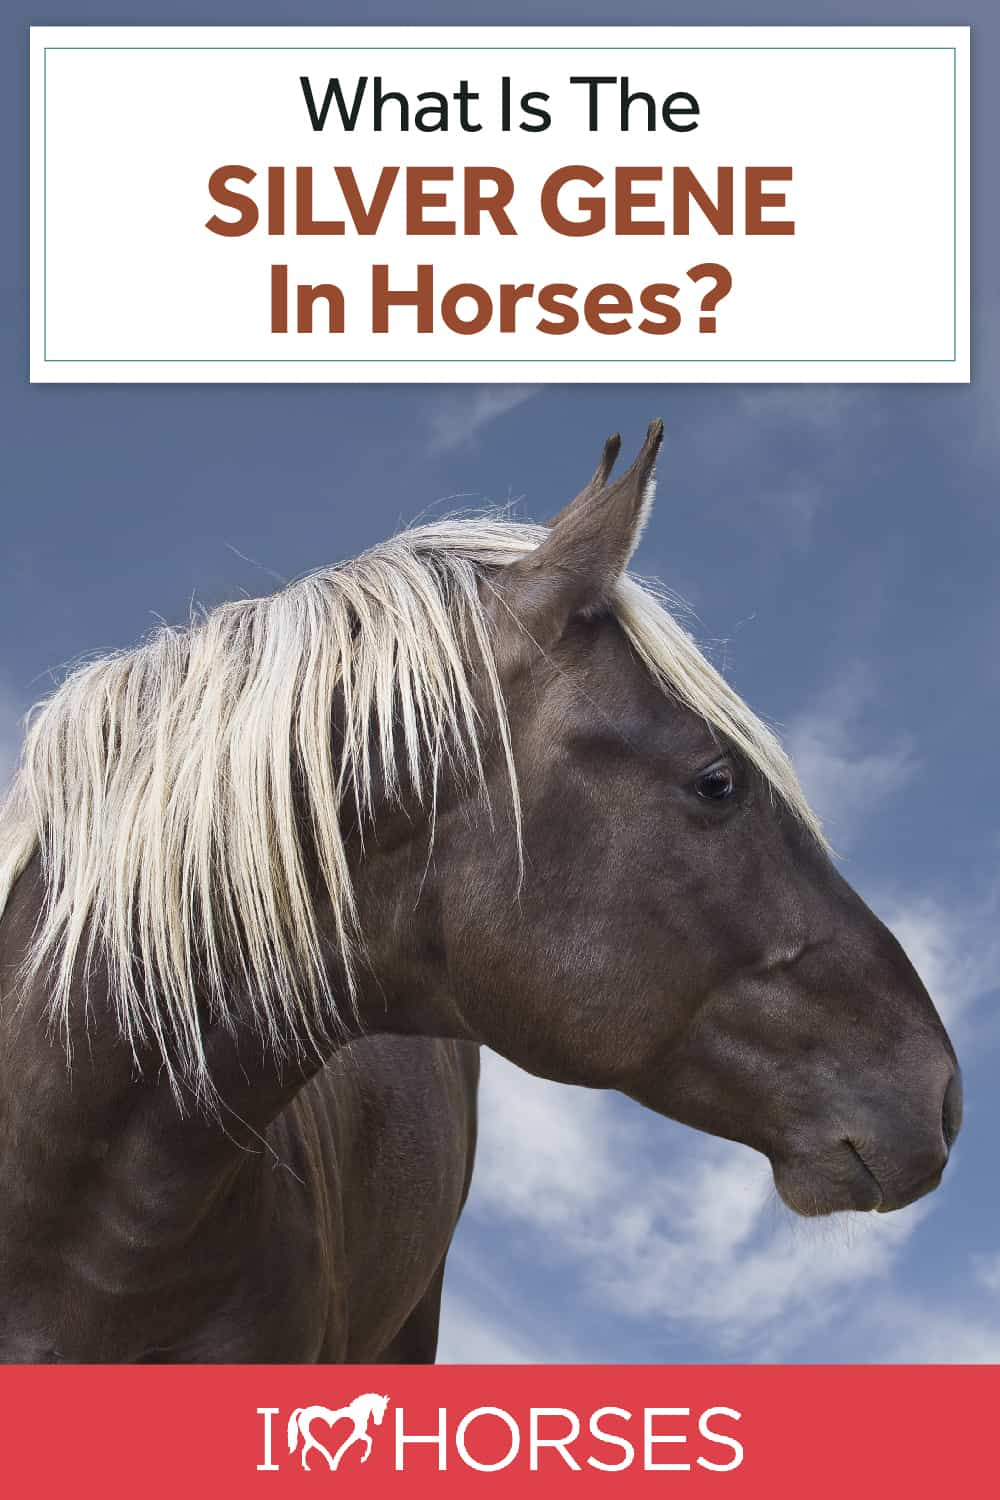 What Is The Silver Gene In Horses